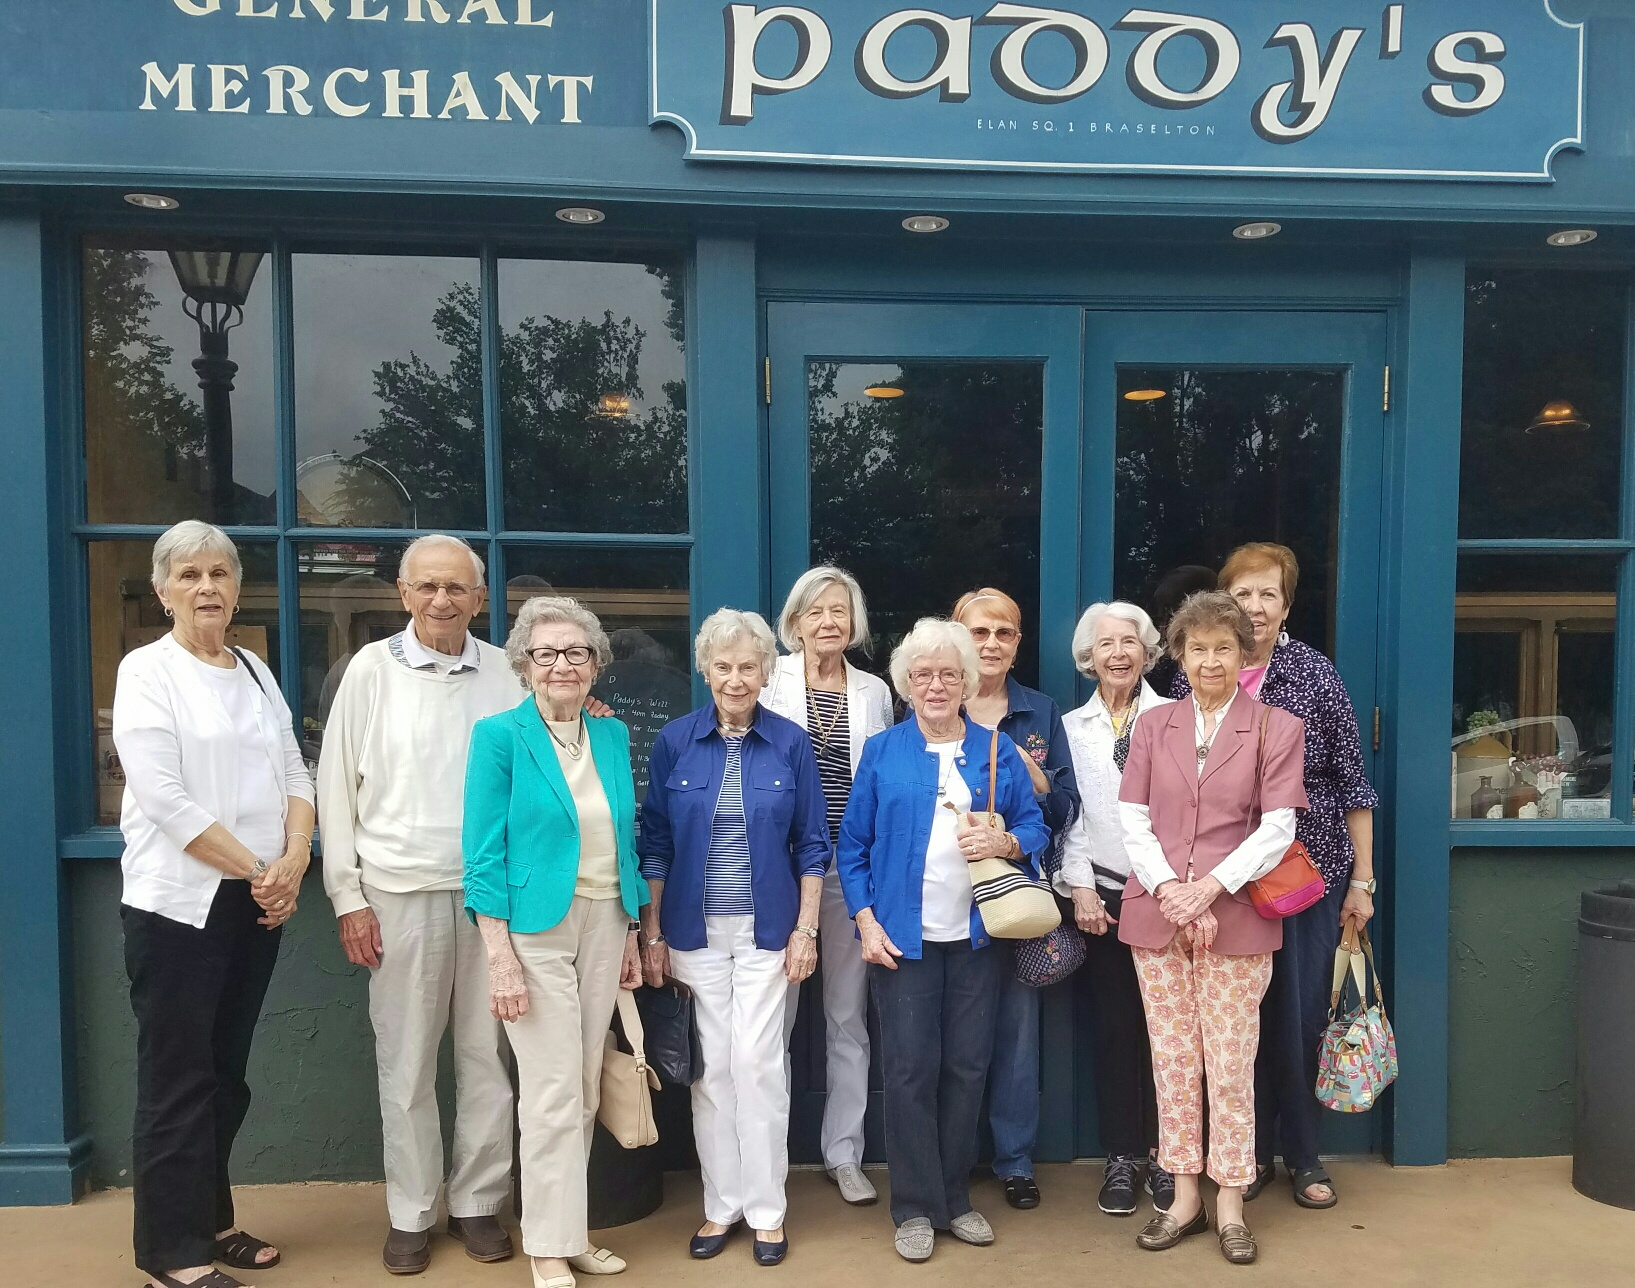 Ladies on staycation visiting Paddy's general merchant